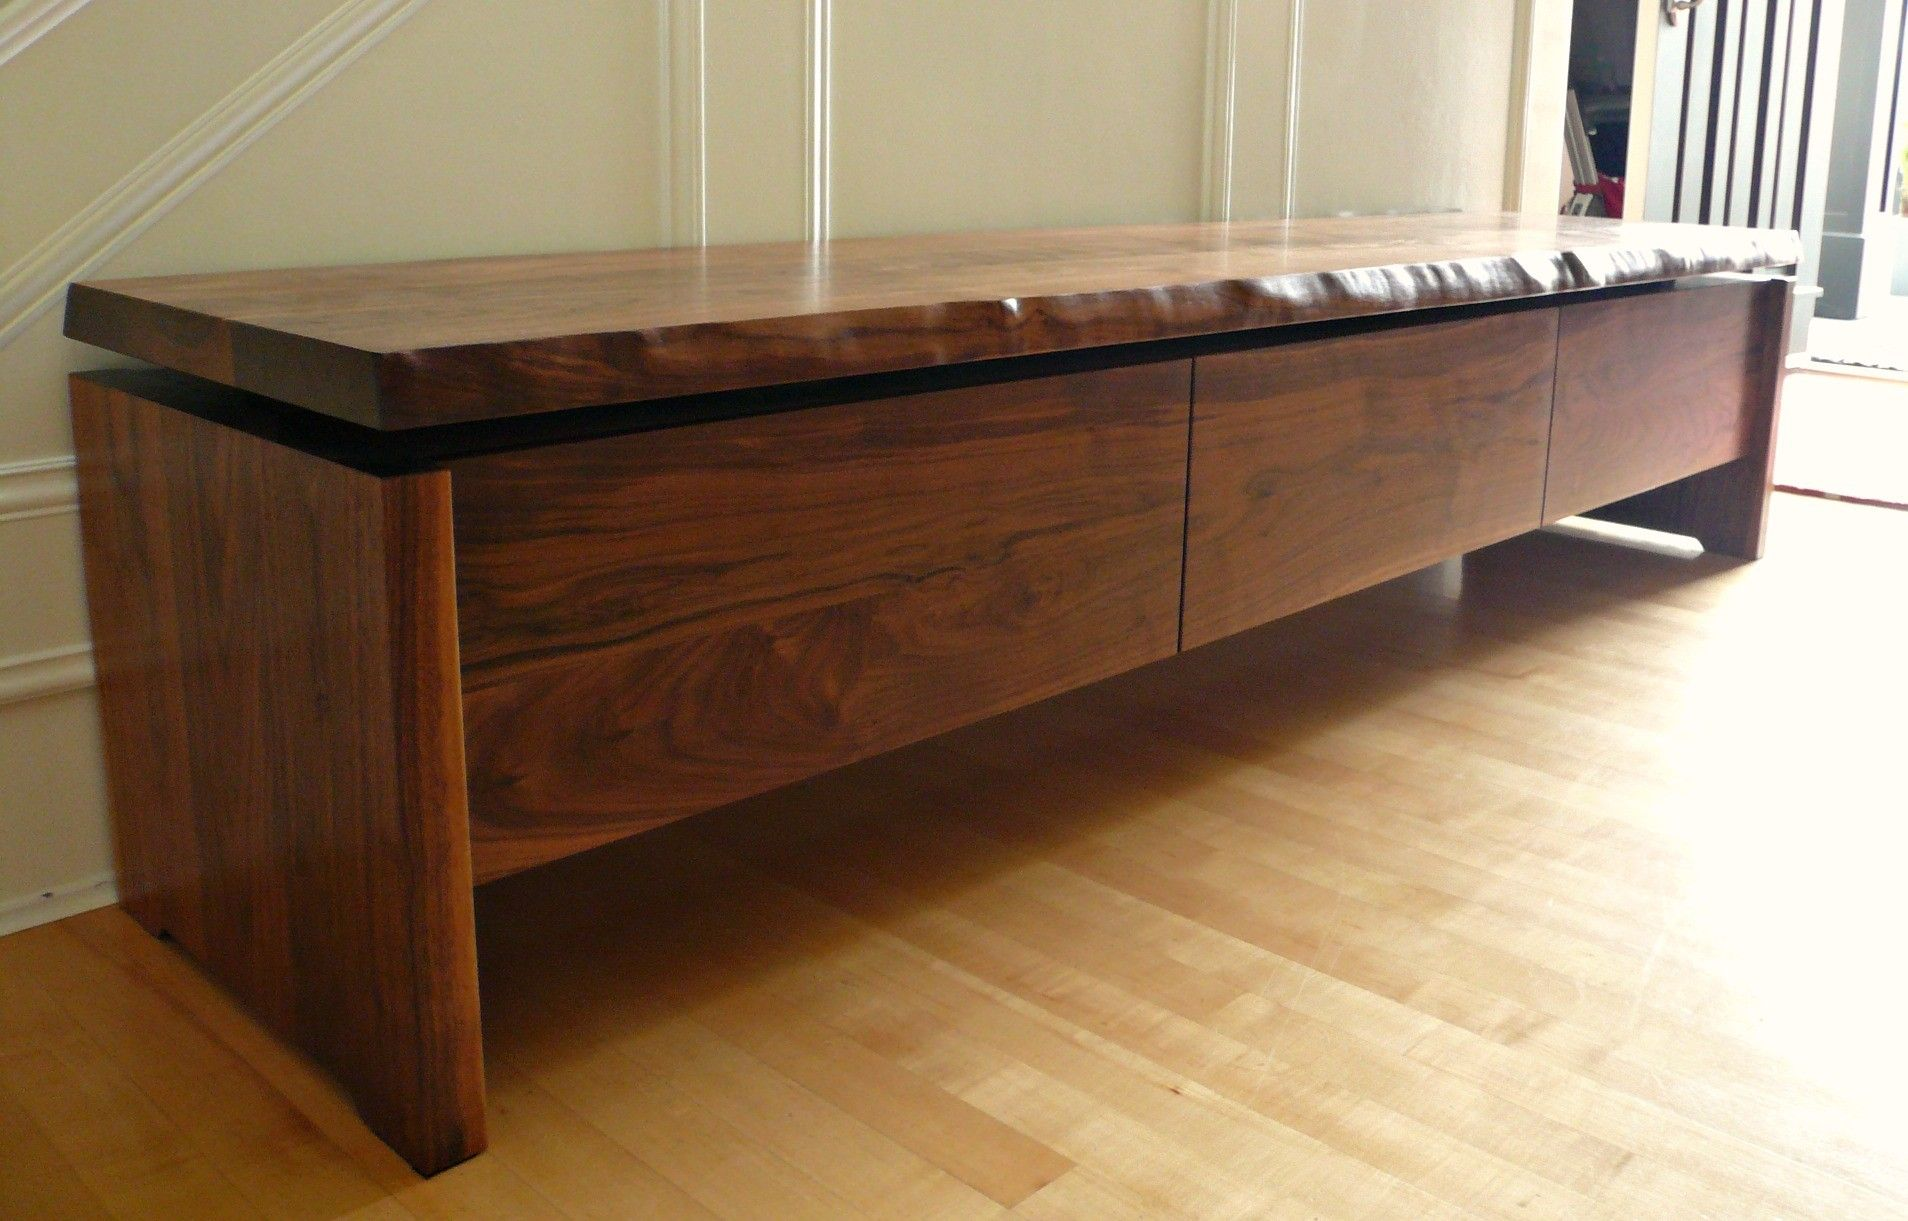 Long Bench With Storage Wooden Storage Bench Storage Bench Seating Modern Storage Bench